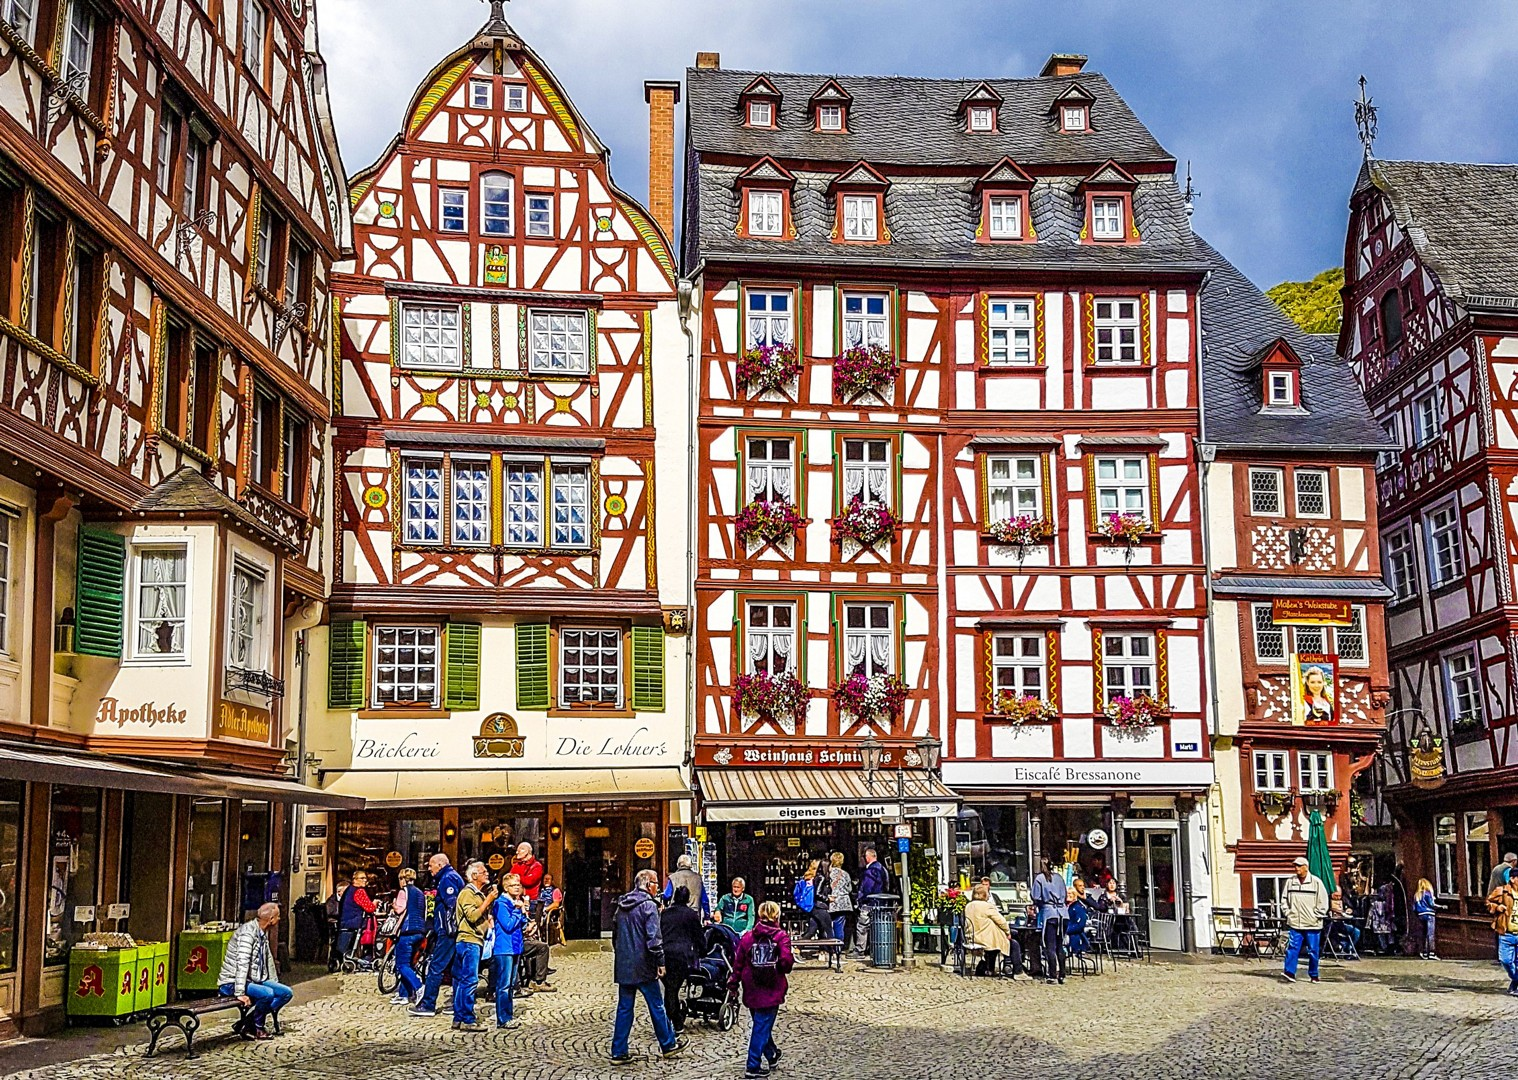 bernkastel-kues-germany-culture-history-cycling-holiday-tour.jpg - Germany - Moselle Valley - Self-Guided Leisure Cycling Holiday - Leisure Cycling